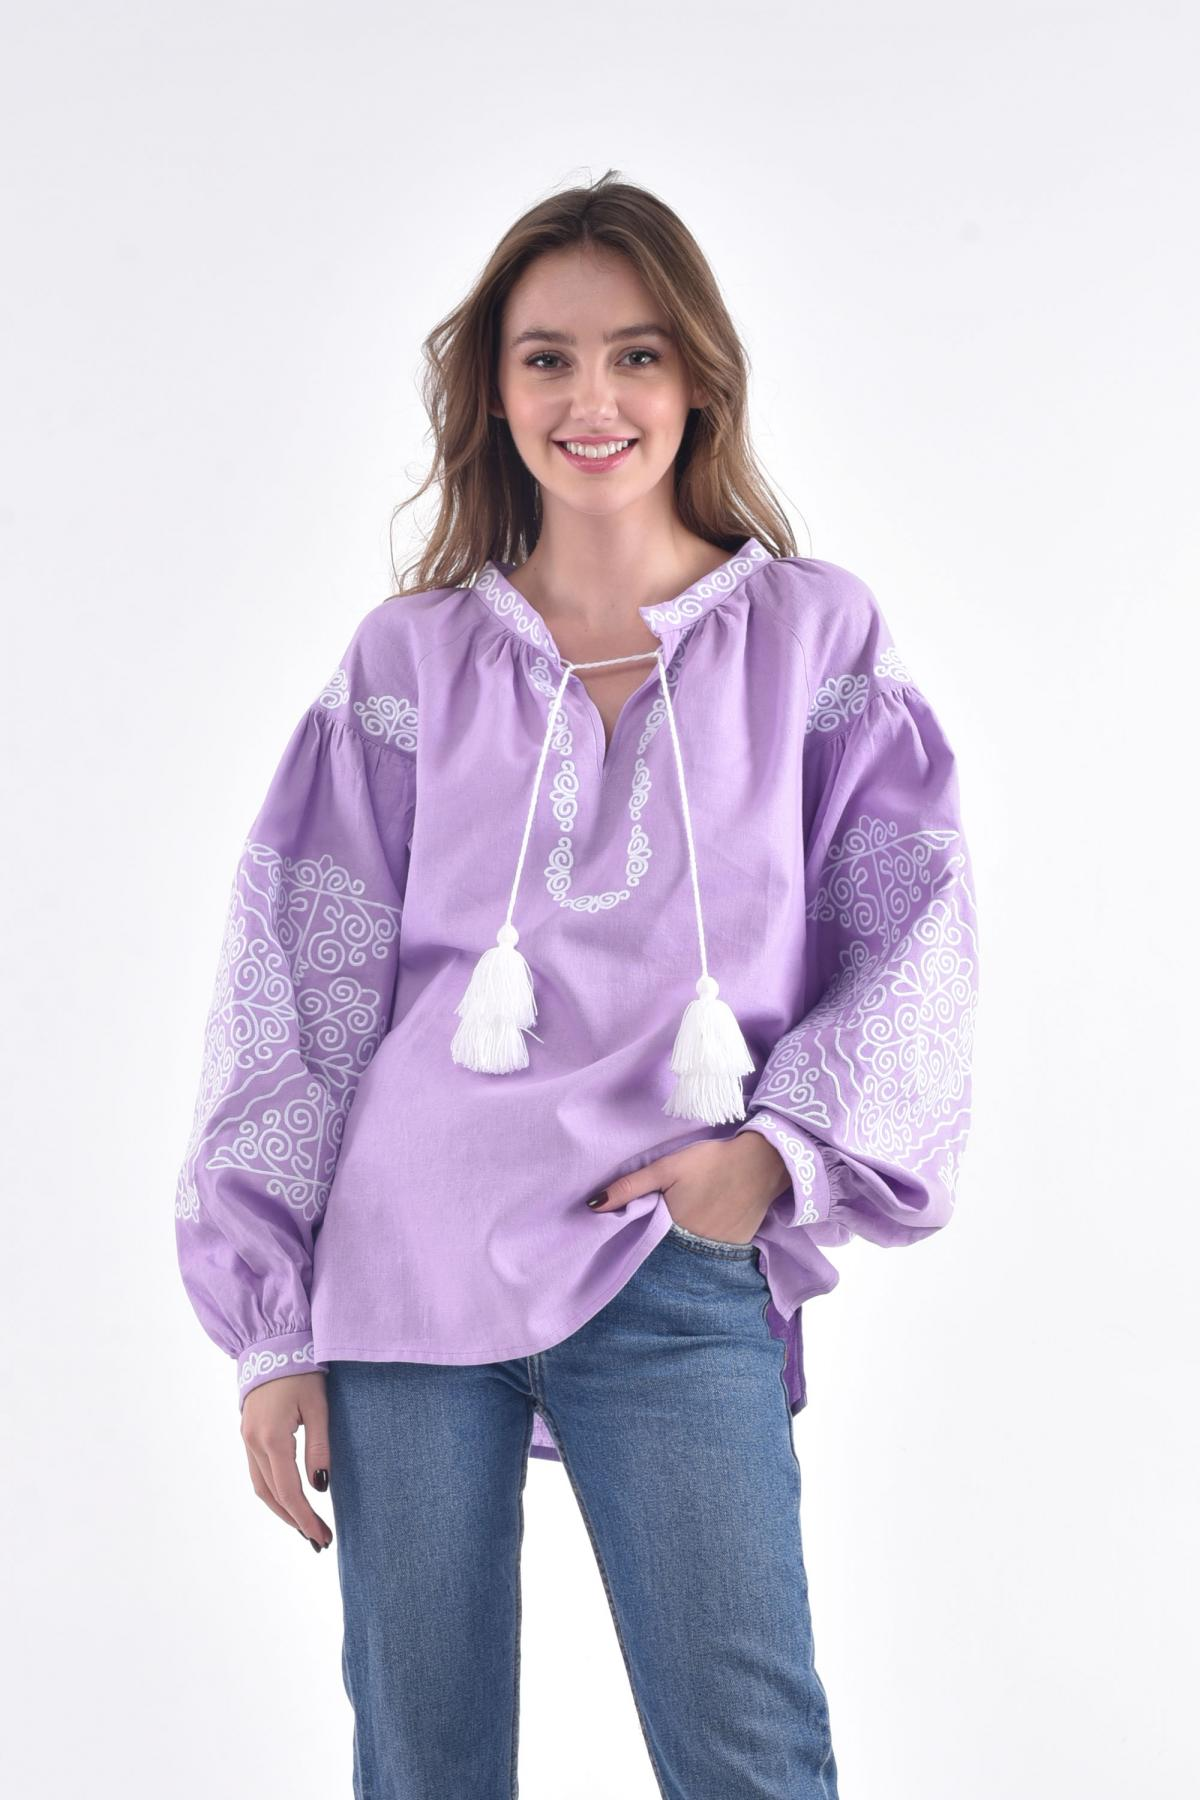 Linen soft embroidered shirt in lavender color. Photo №1. | Narodnyi dim Ukraine